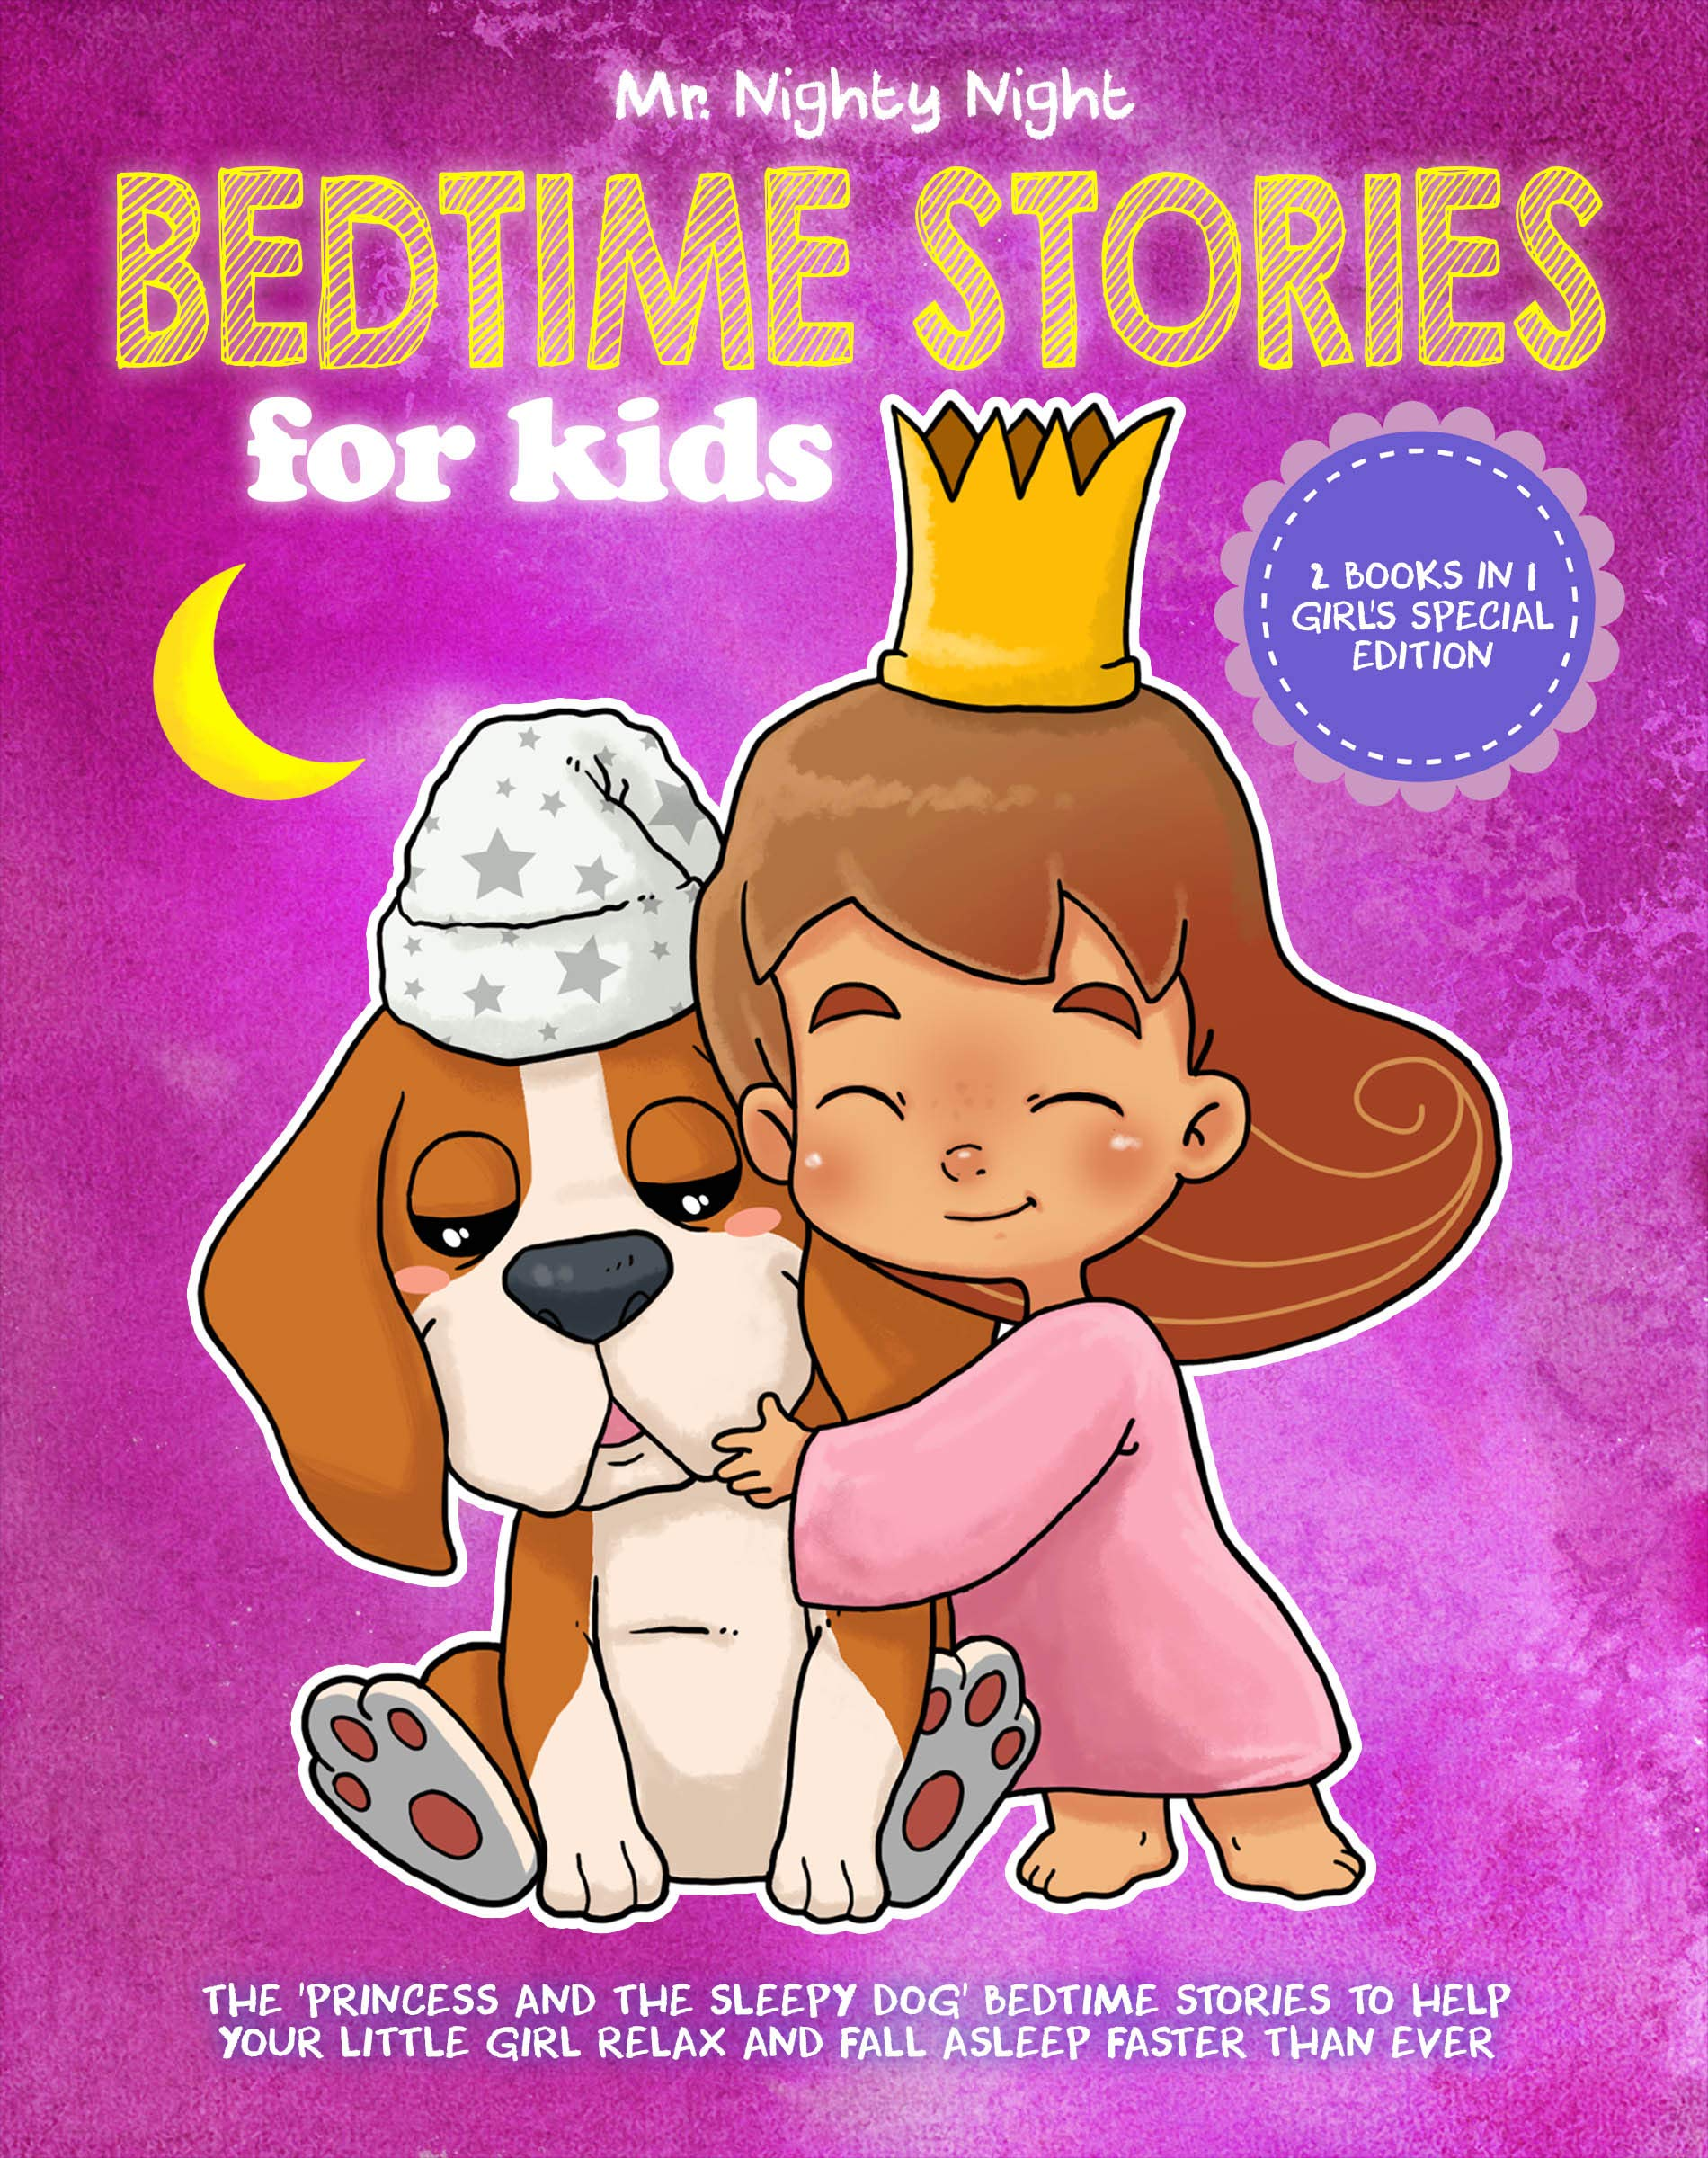 Bedtime Stories For Kids: 2 Books in 1 - Girl's Special Edition - The 'Princess and The Sleepy Dog' Bedtime Stories to Help Your Little Girl Relax and Fall Asleep Faster Than Ever